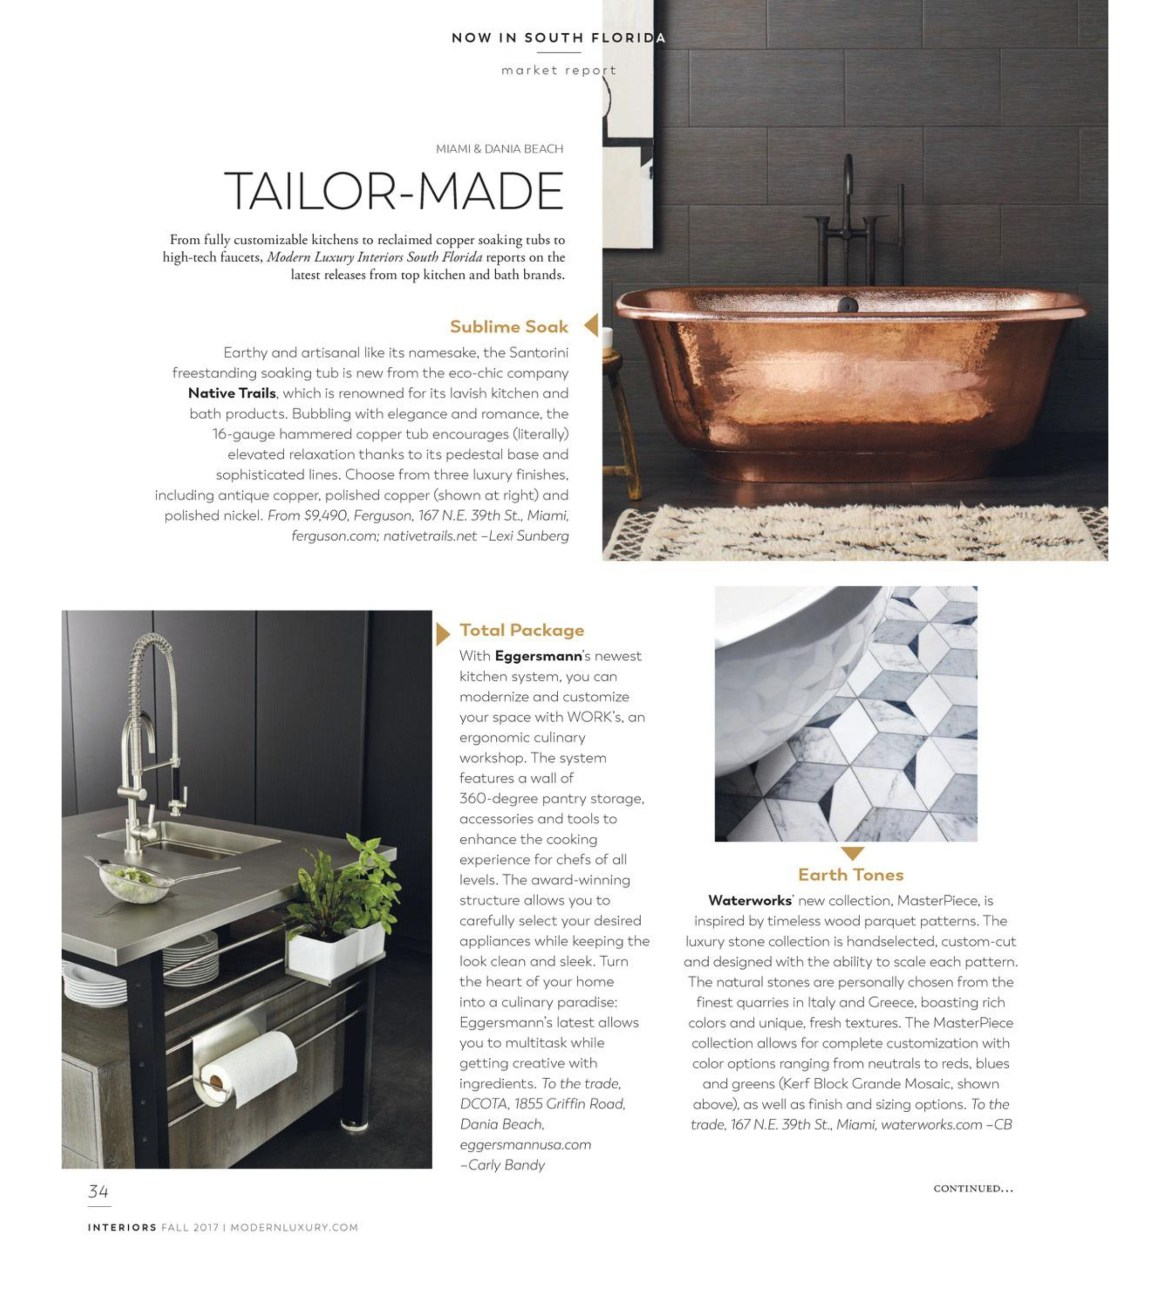 modern luxury interiors south florida magazine featured this market report for eggermann's innovative work's kitchen cabinet system